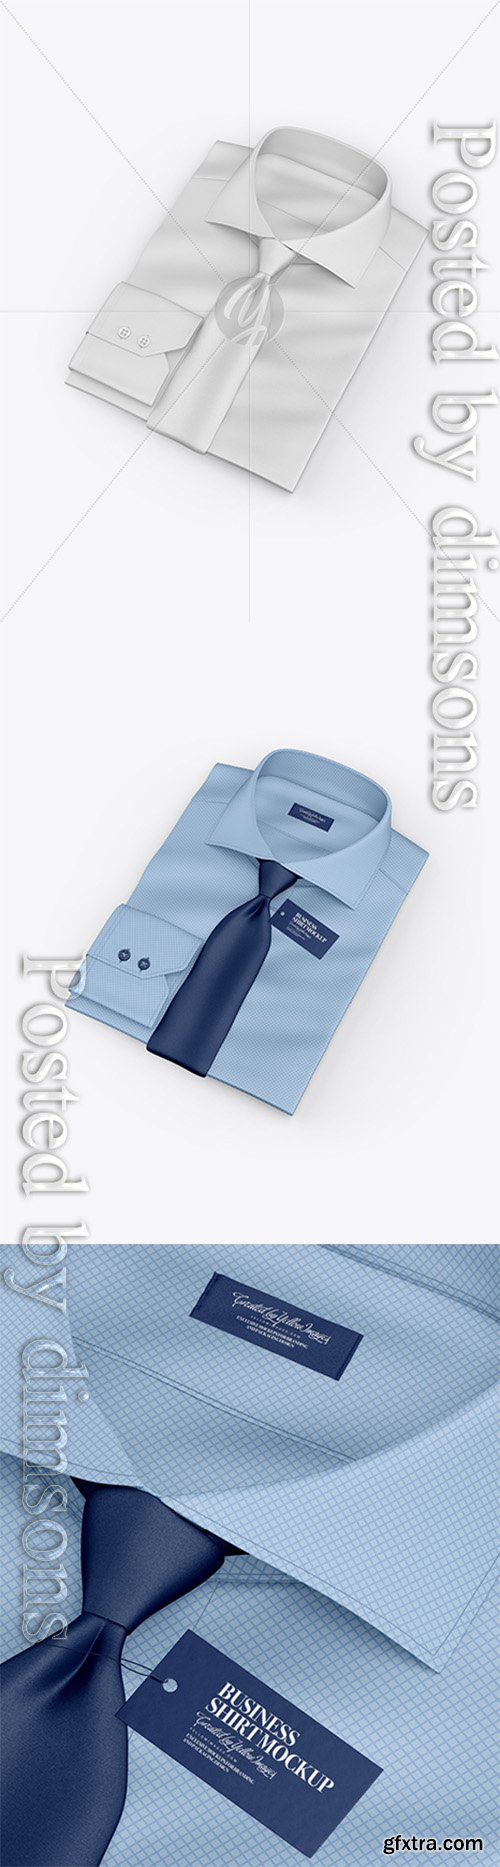 Folded Shirt With Tie Mockup - Half Side View (High-Angle Shot) 25072